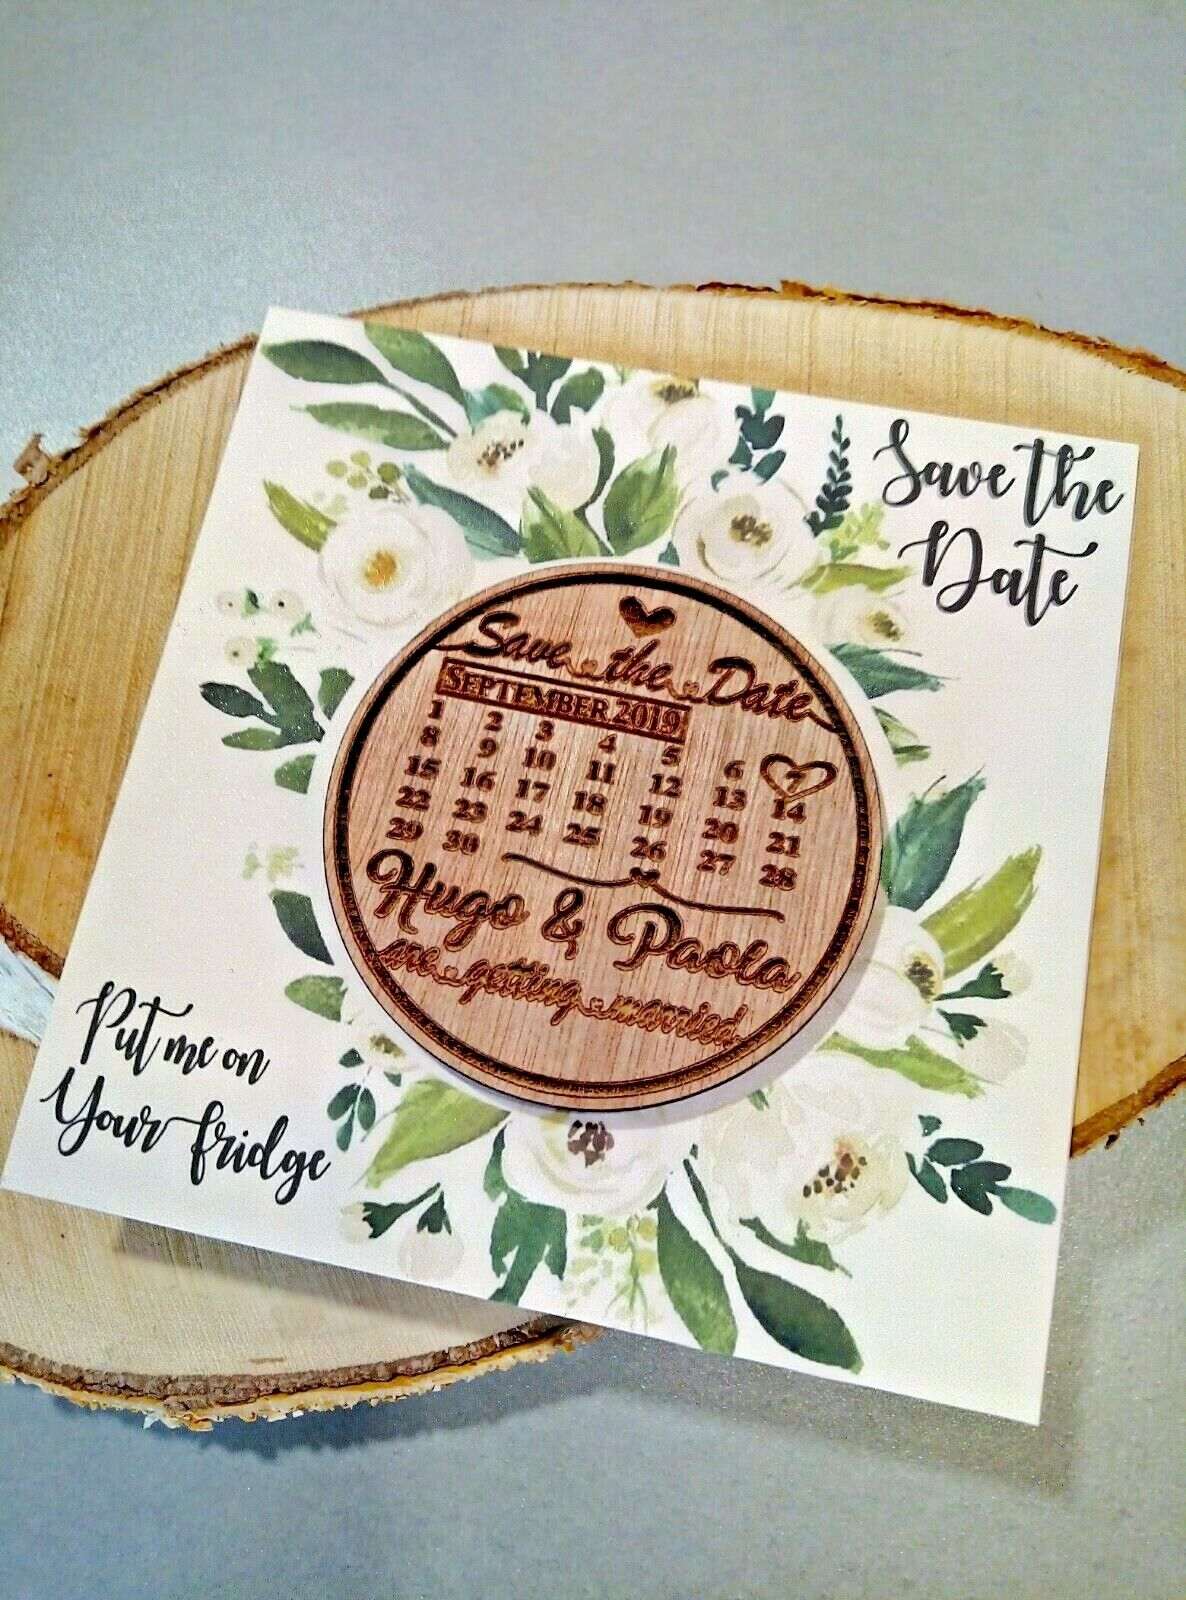 Wooden Save The Date Calendar Fridge Magnet with Printed Card and Envelope